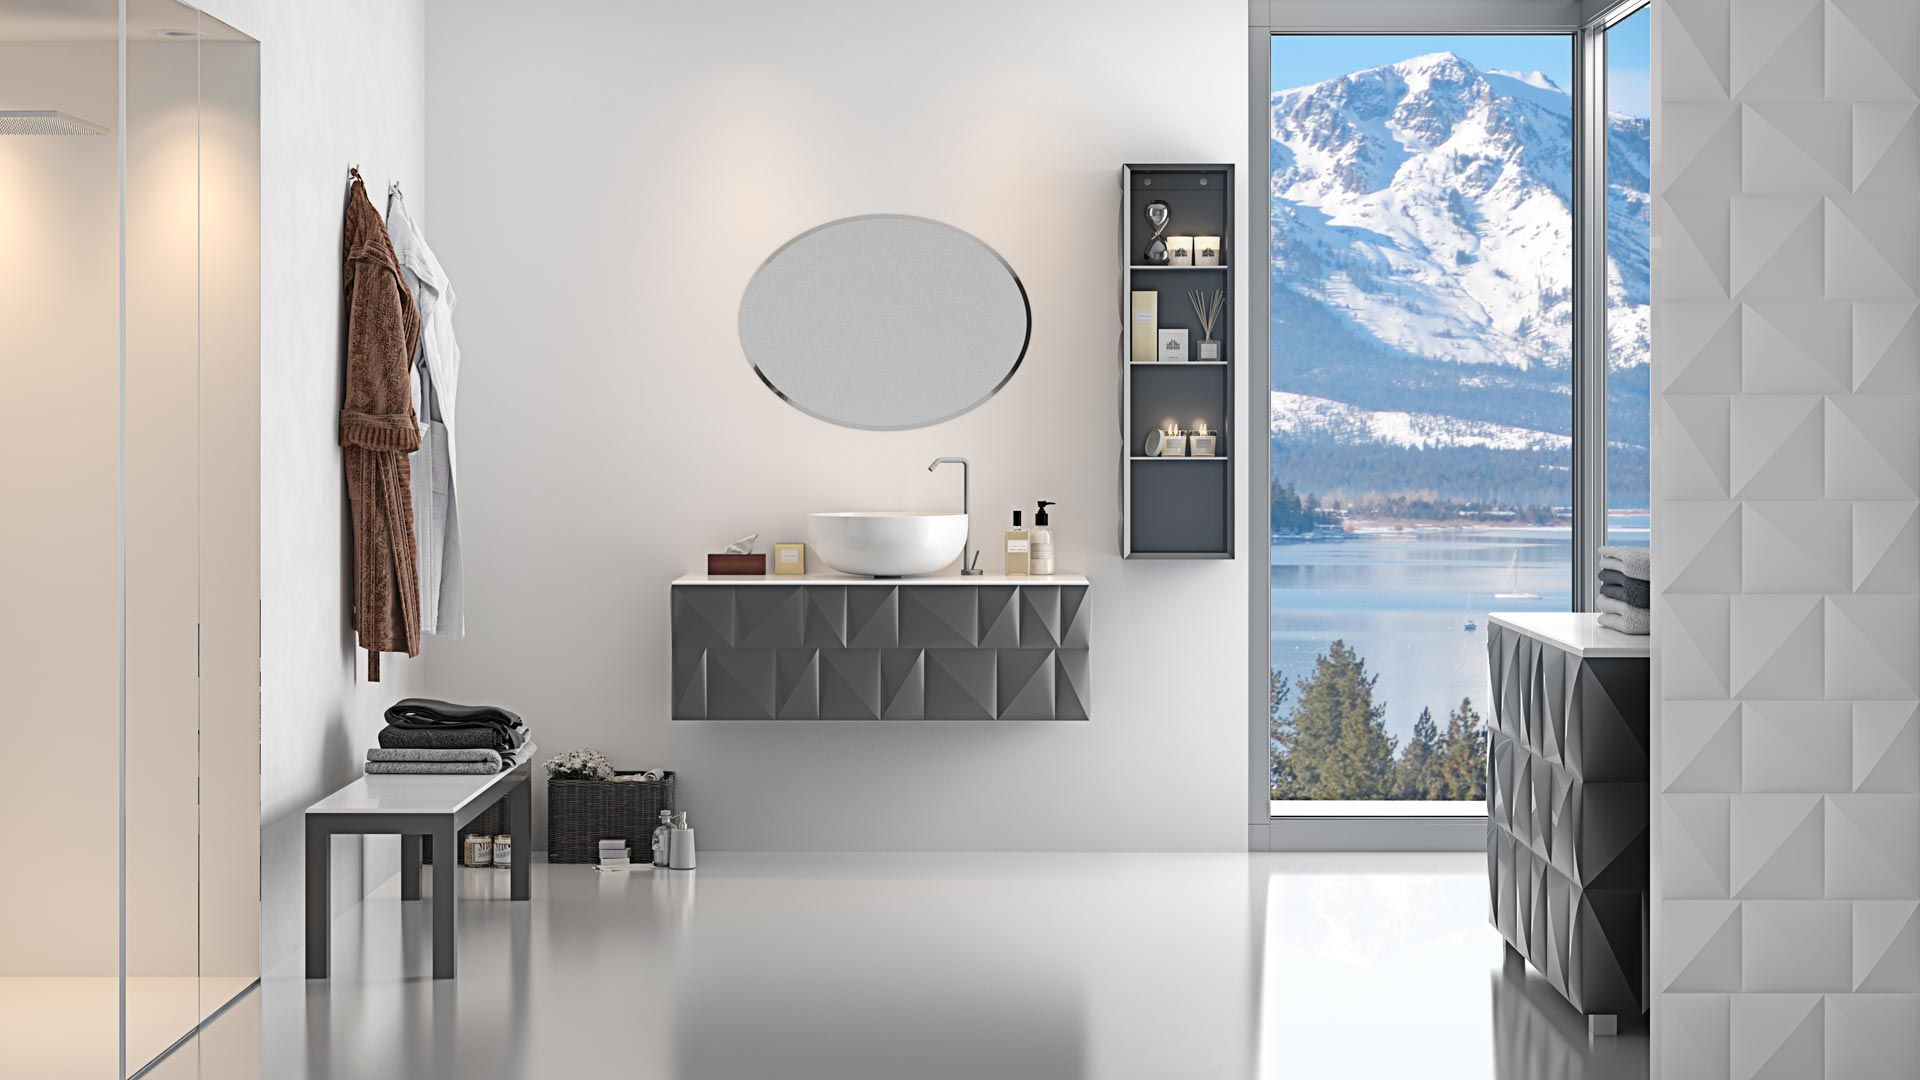 Bathroom and Home: Design and furnishing by Bianchini & Capponi